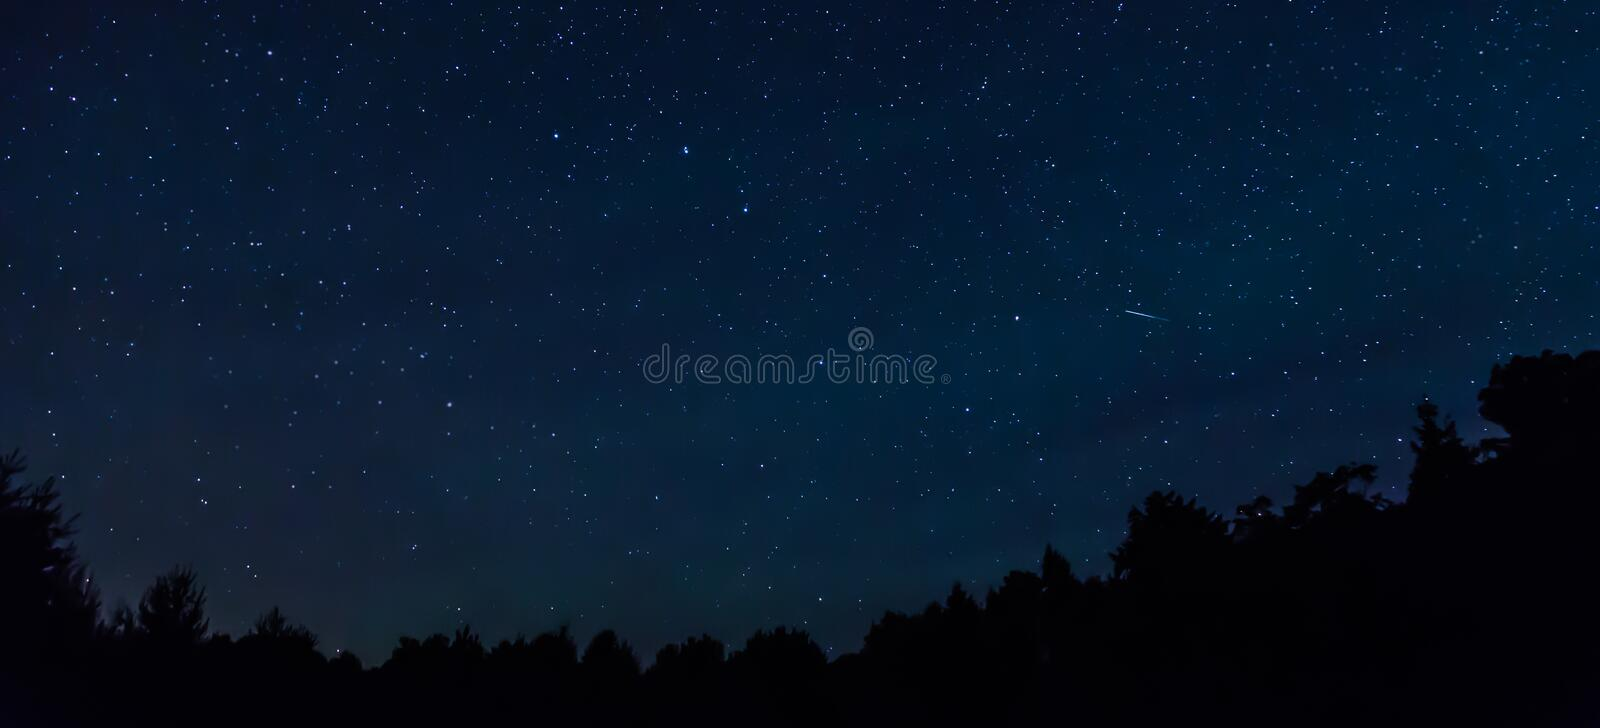 Starry night sky with a shooting star and a treeline in the foreground. stock photos